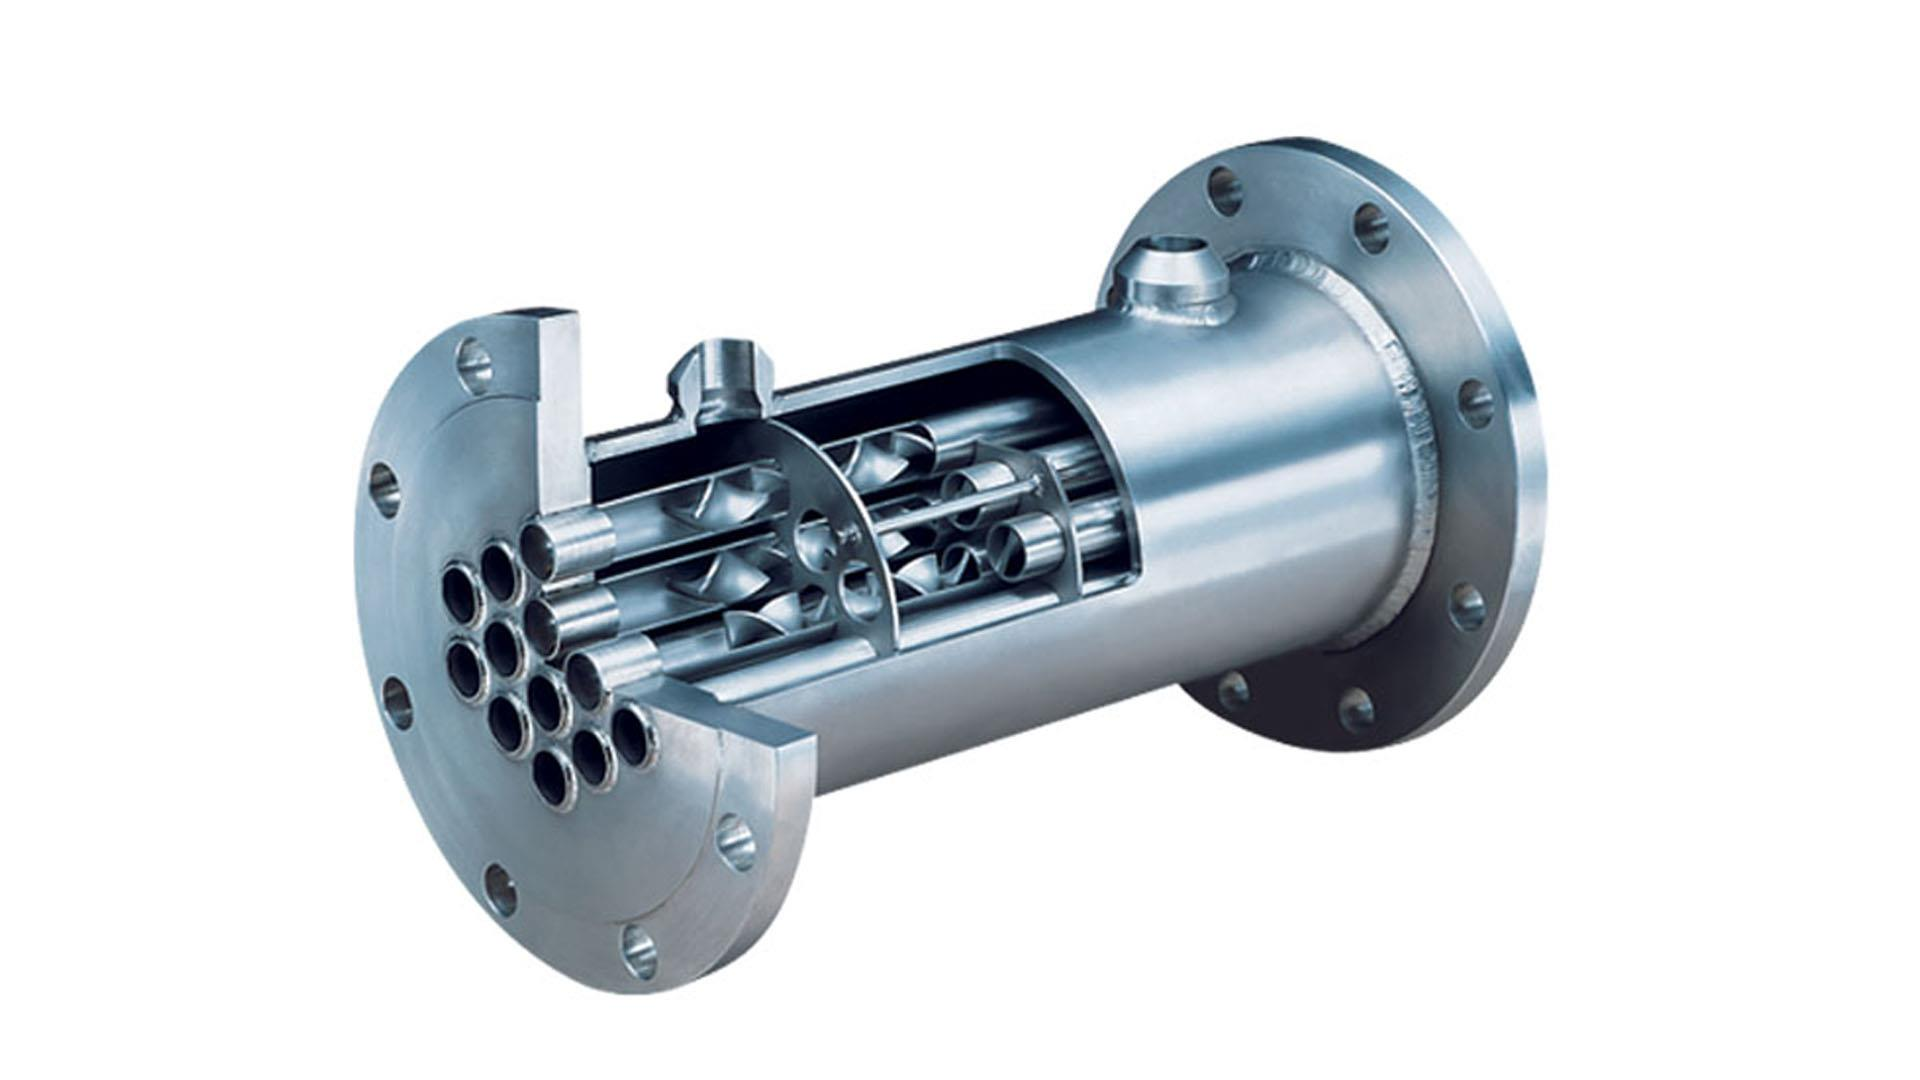 Render of Heat Exchanger